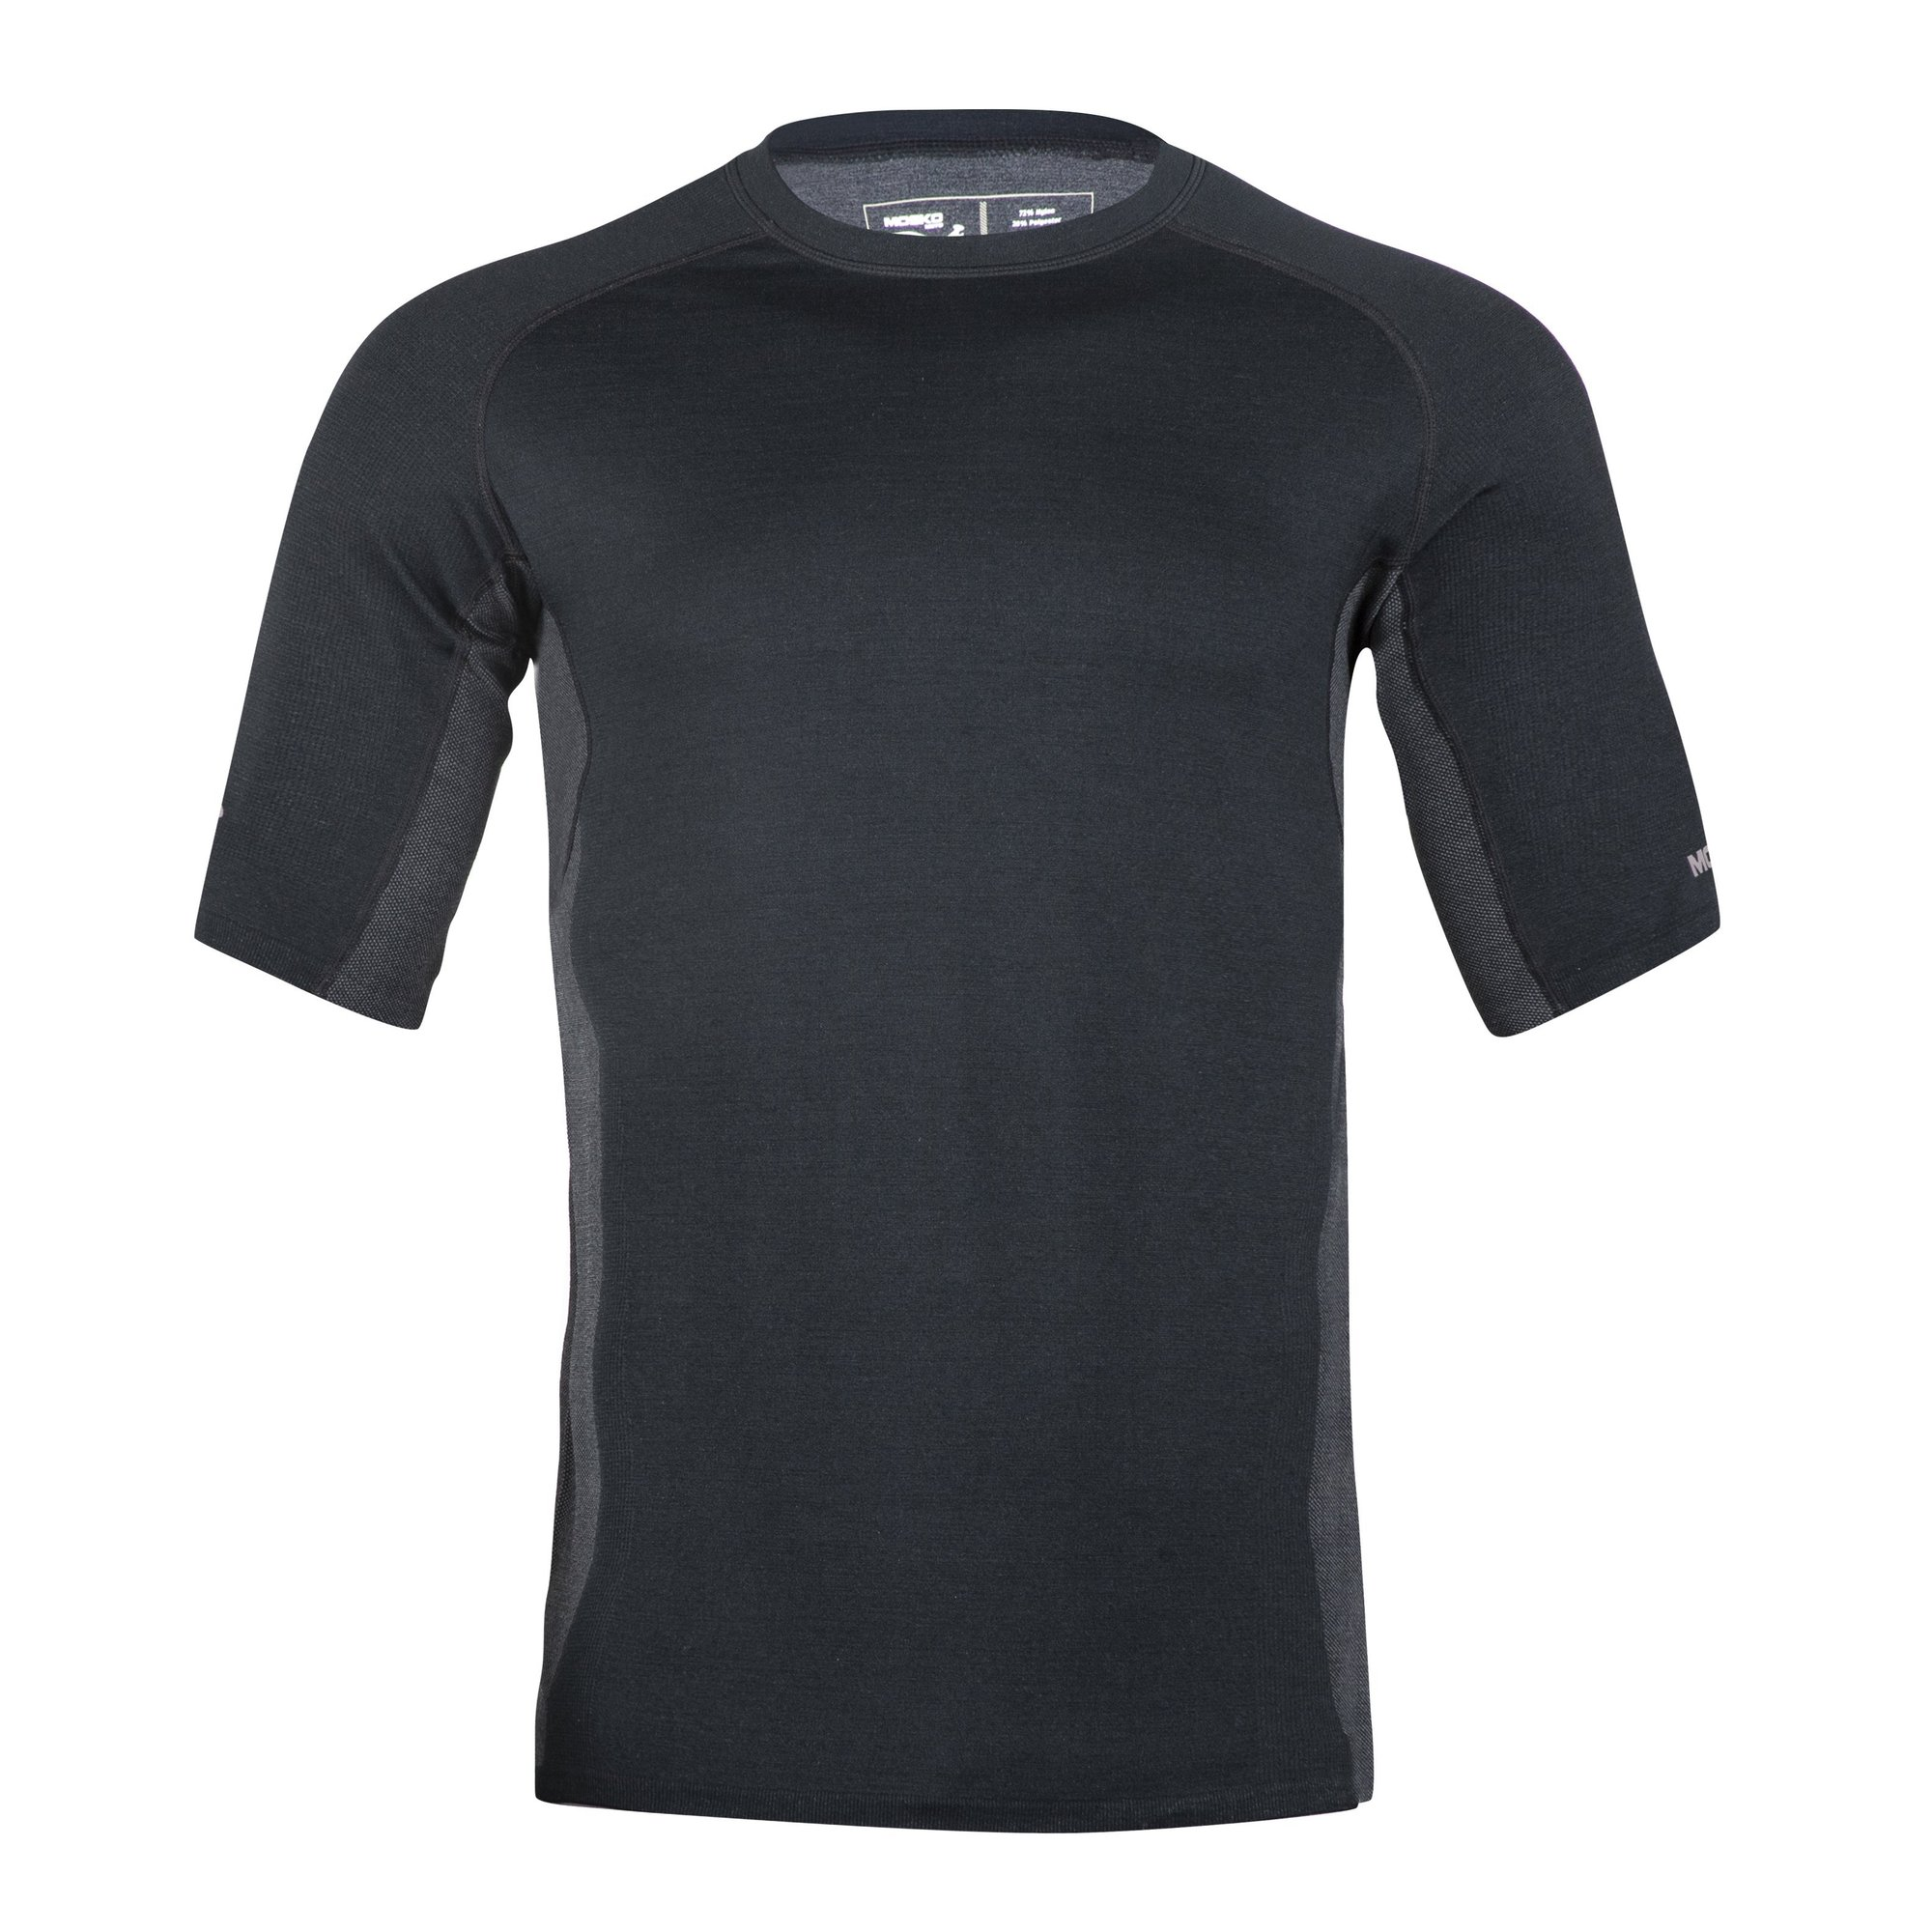 mosko-moto-apparel-s-imbricate-base-layer-11333235081277_2000x.jpg